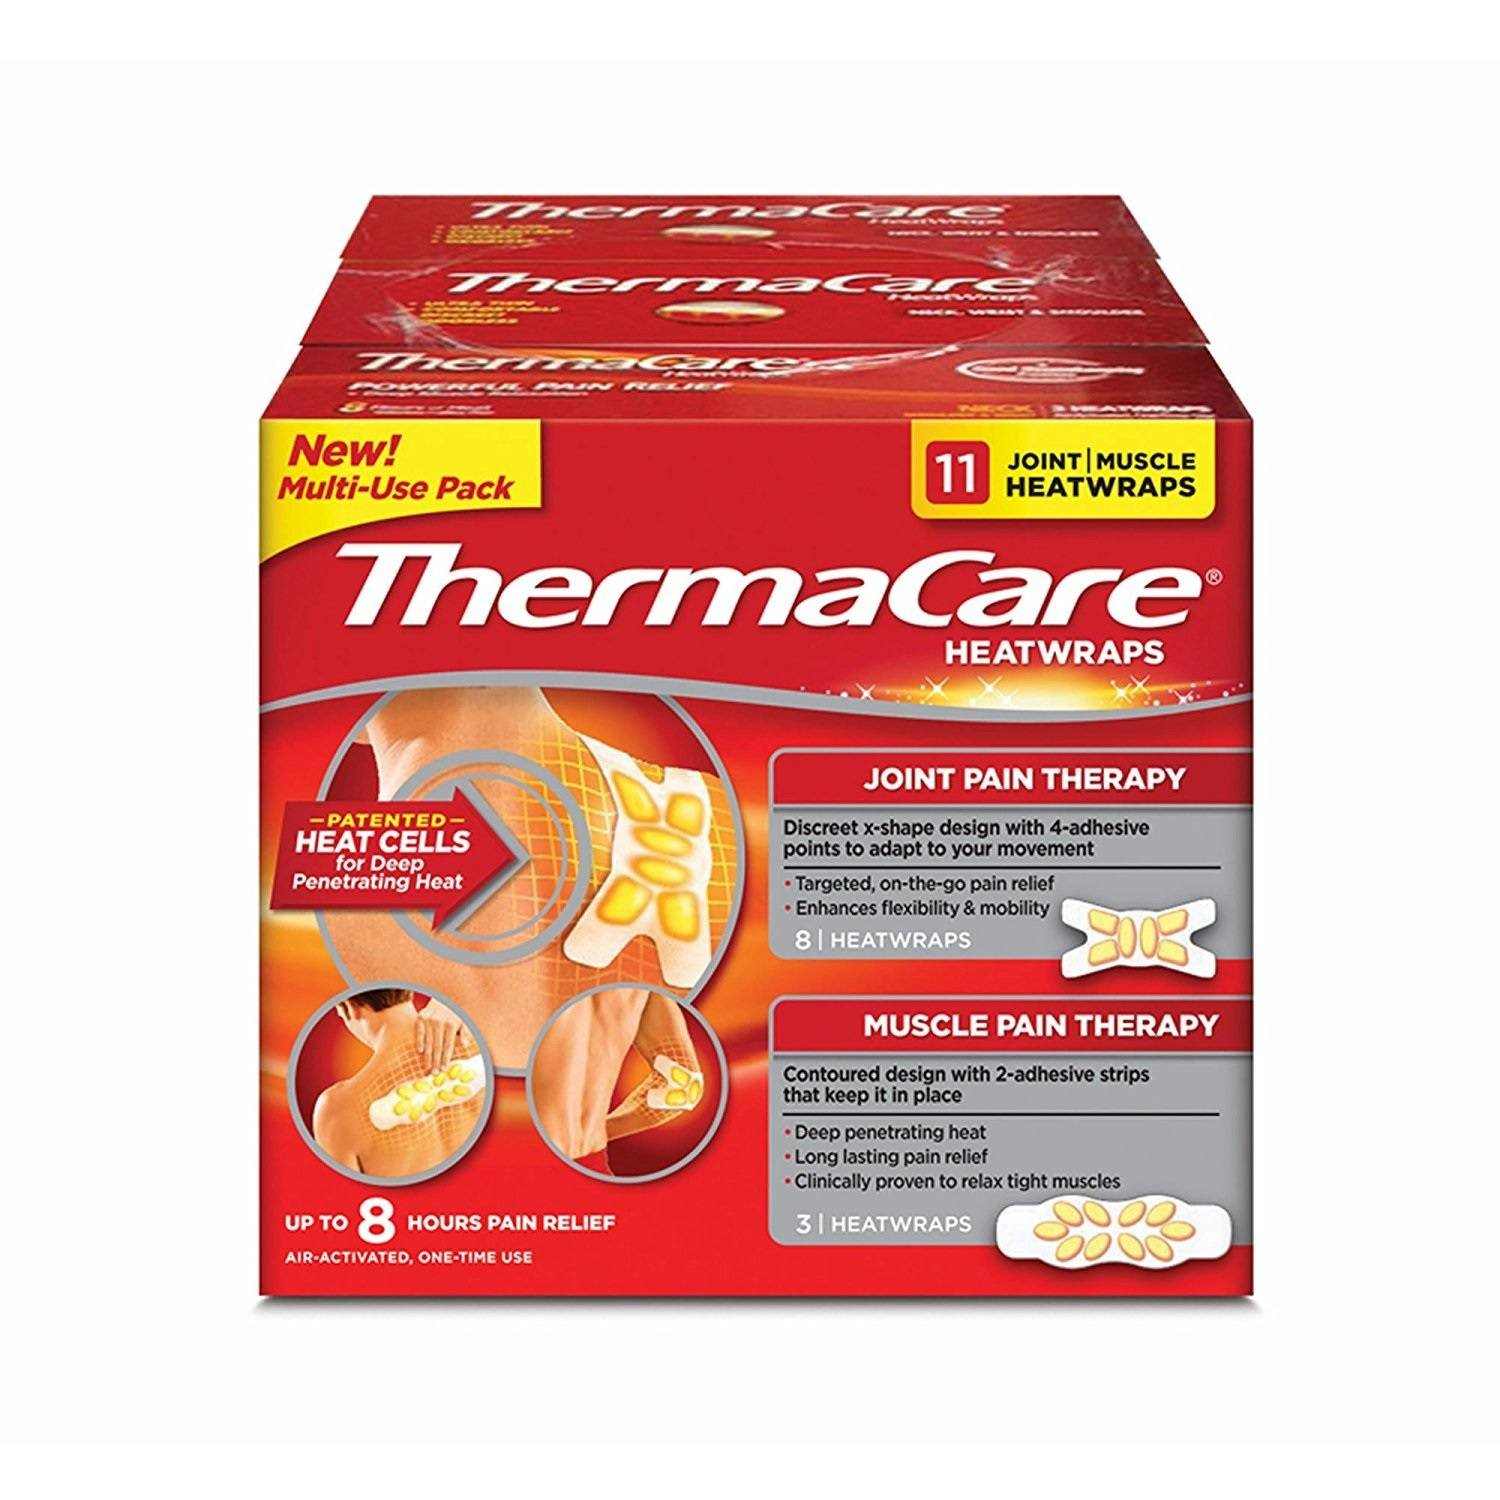 ThermaCare New Multi-Purpose HeatWraps, 3 for Muscle Pain and 8 for Joint Pain Therapy, Flexible Long-Lasting Relief for Up to 8 Hours, 11 Count